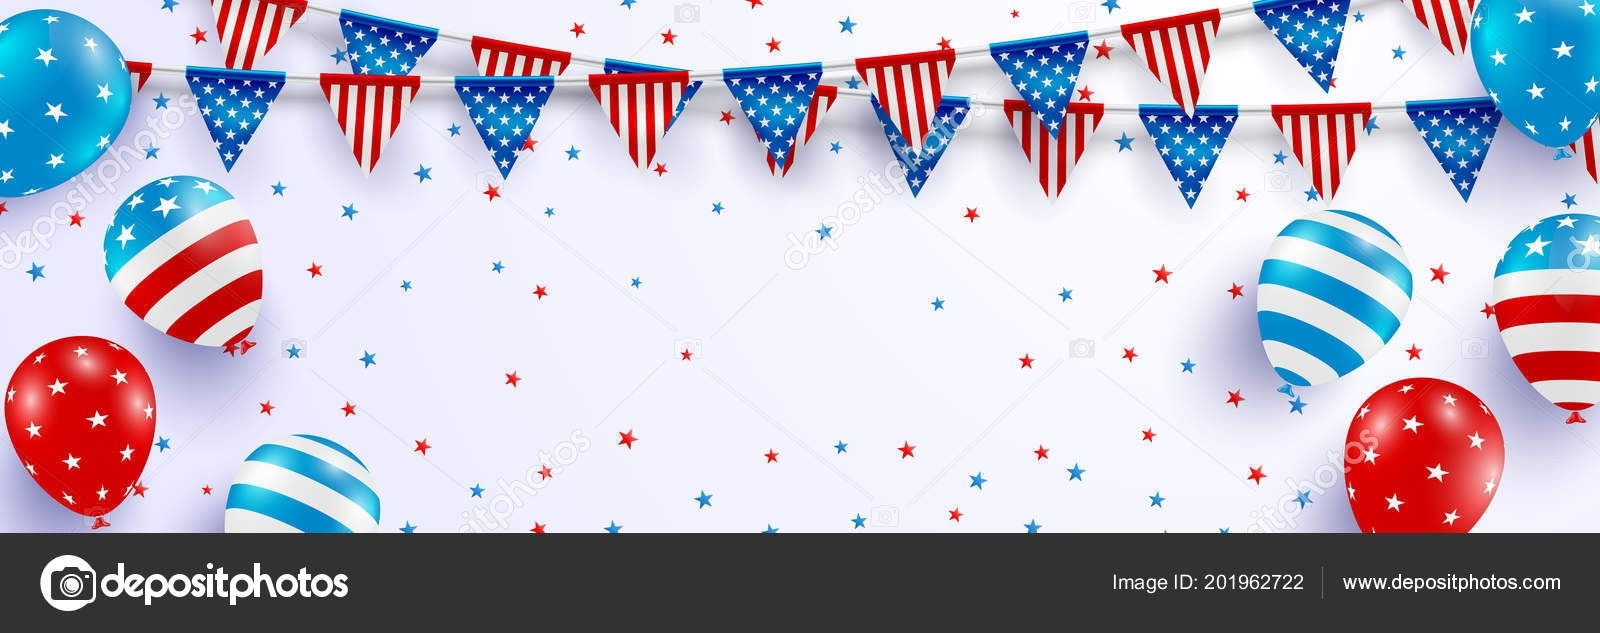 Closed For 4Th Of July Sign Template | 4Th July Blackguards-July 4Th Closed Sign Template